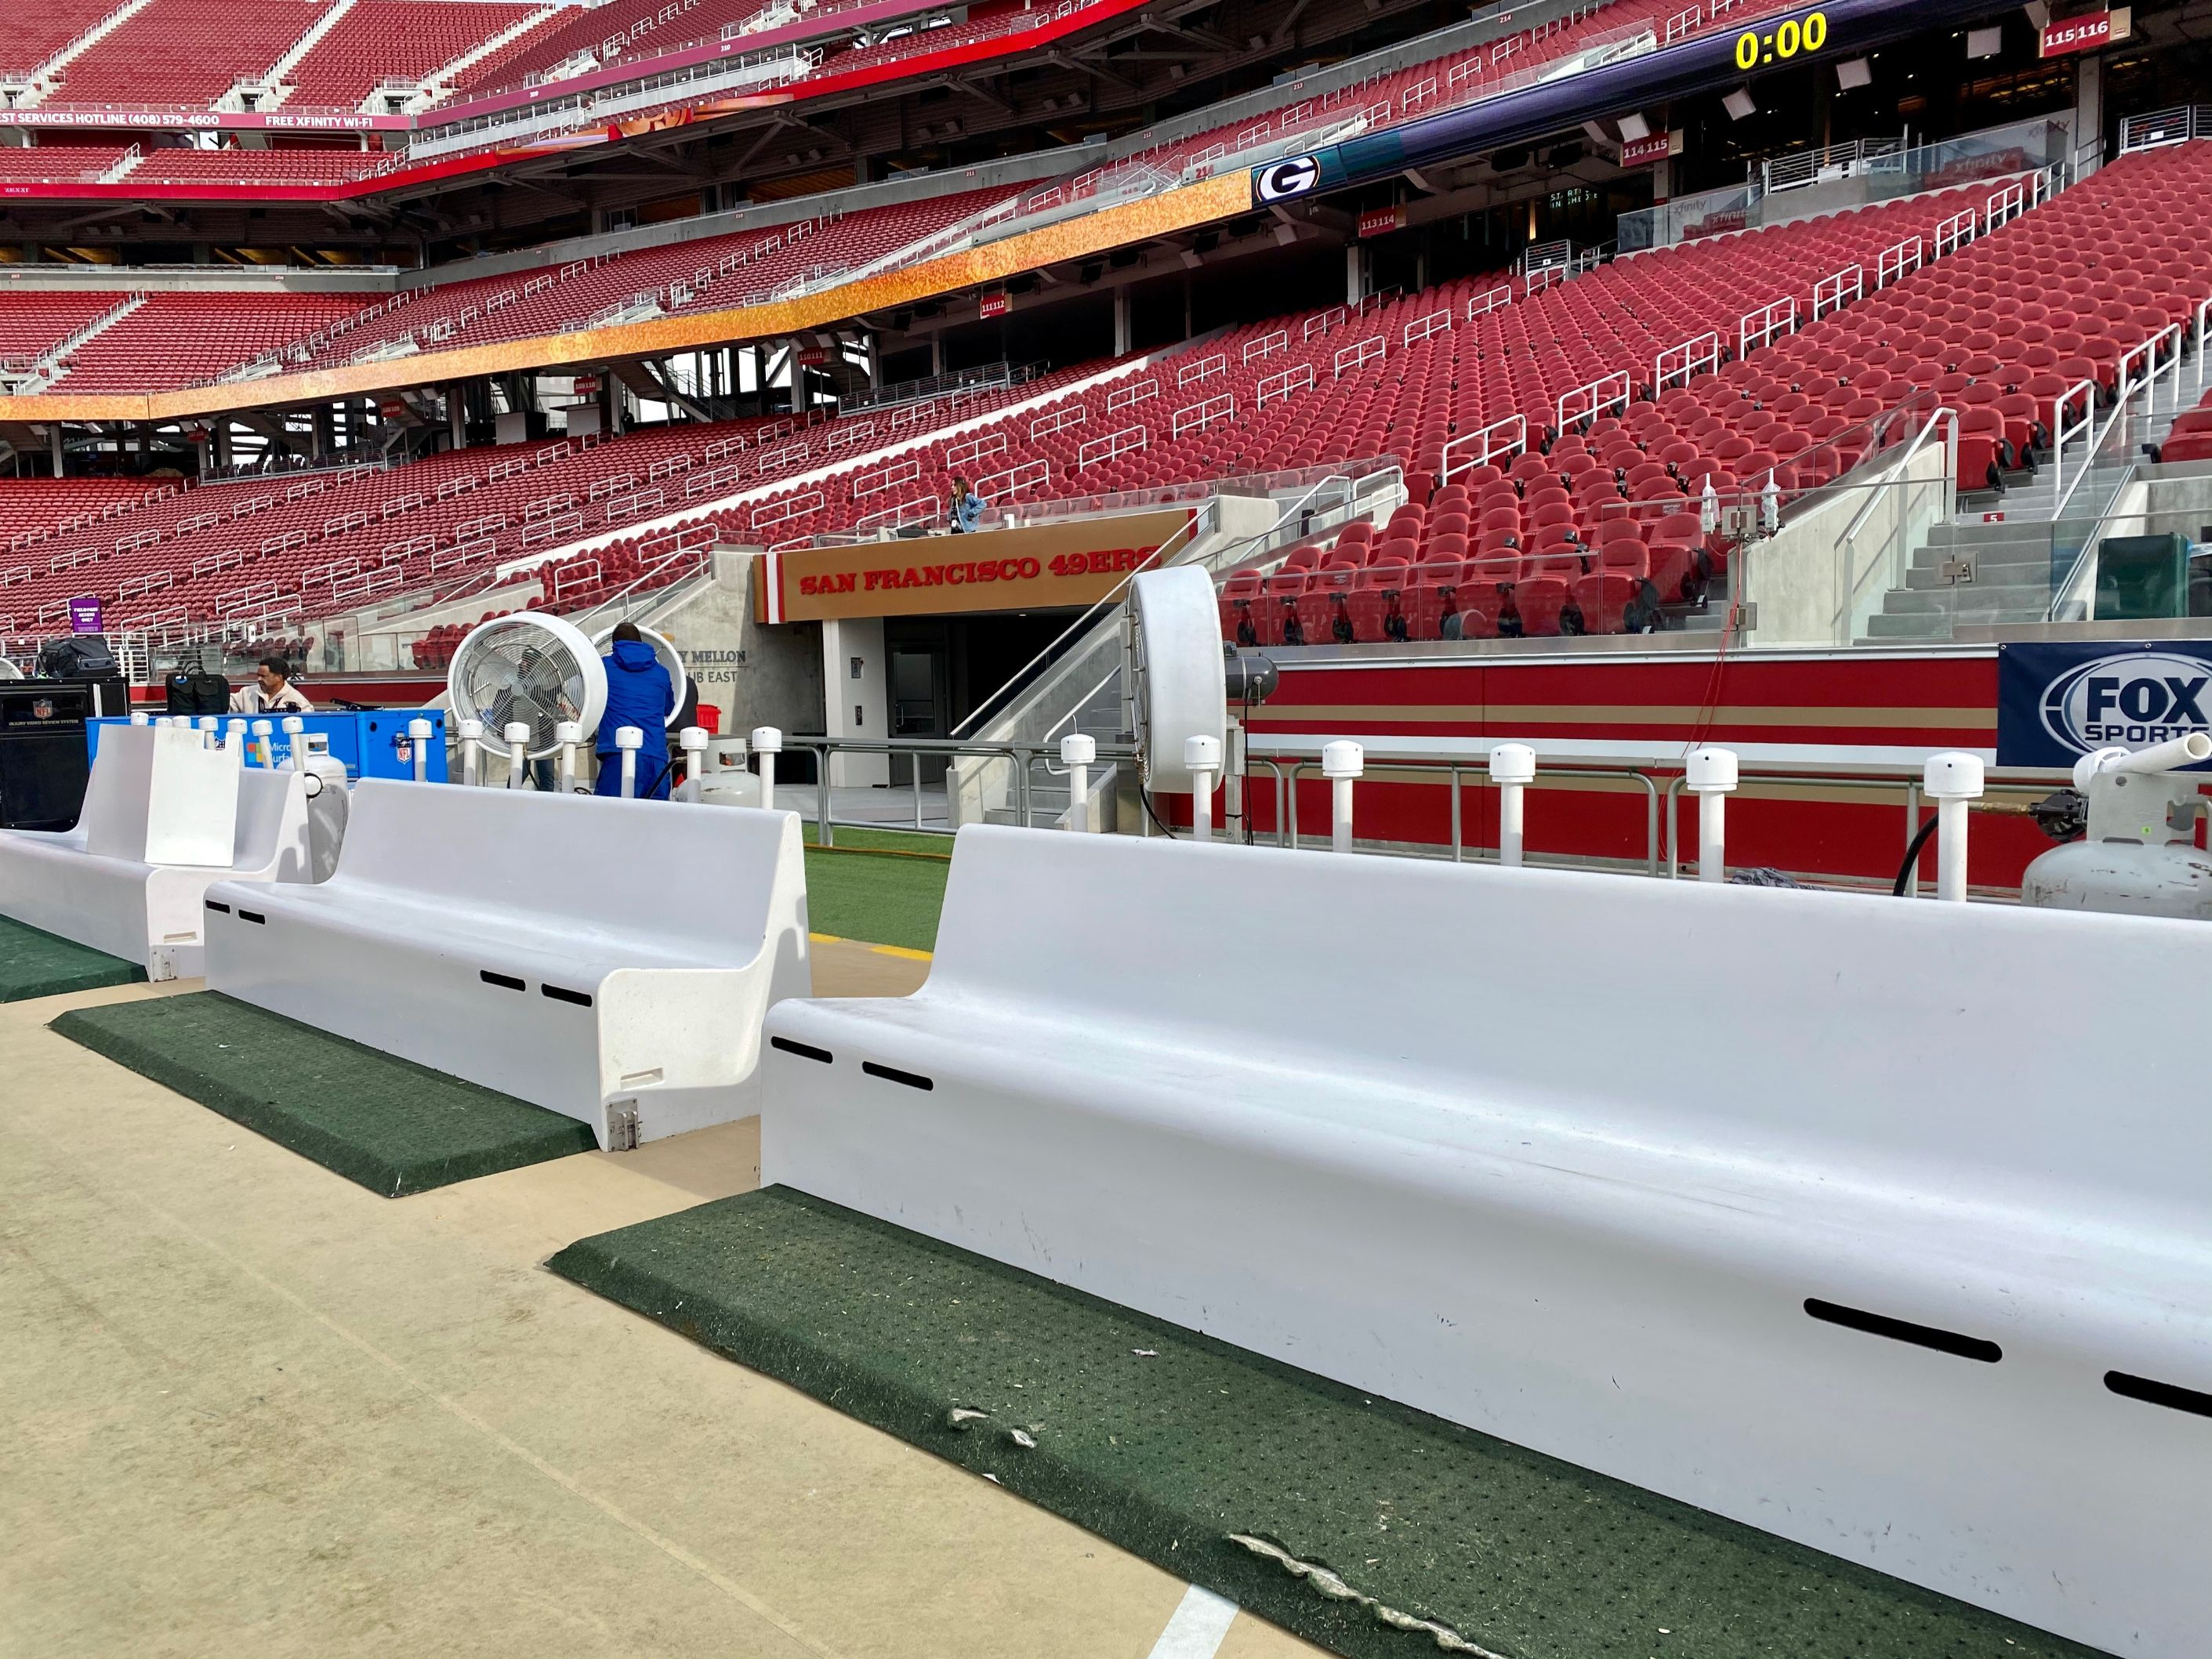 BIG FOGG TO SET UP ITS SIDELINE HEATING BENCHES AT THE NFCCHAMPIONSHIP GAME BETWEEN   SAN FRANCISCO 49ers & THE GREEN BAY PACKERS ON DECEMBER 19, 2020